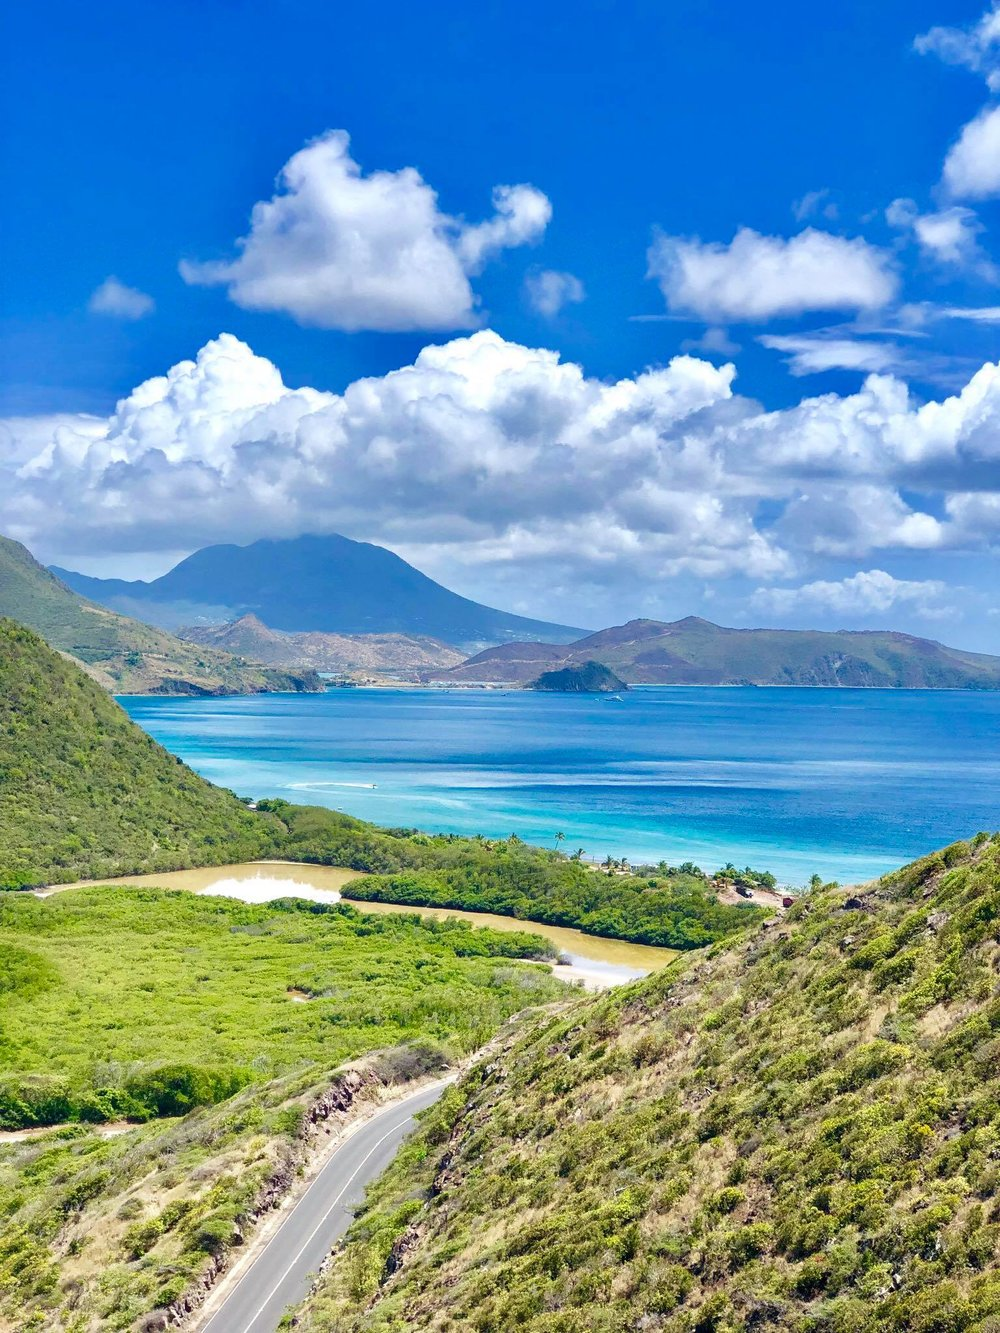 Kach Solo Travels in 2019 Hello from St Kitts 1.jpg